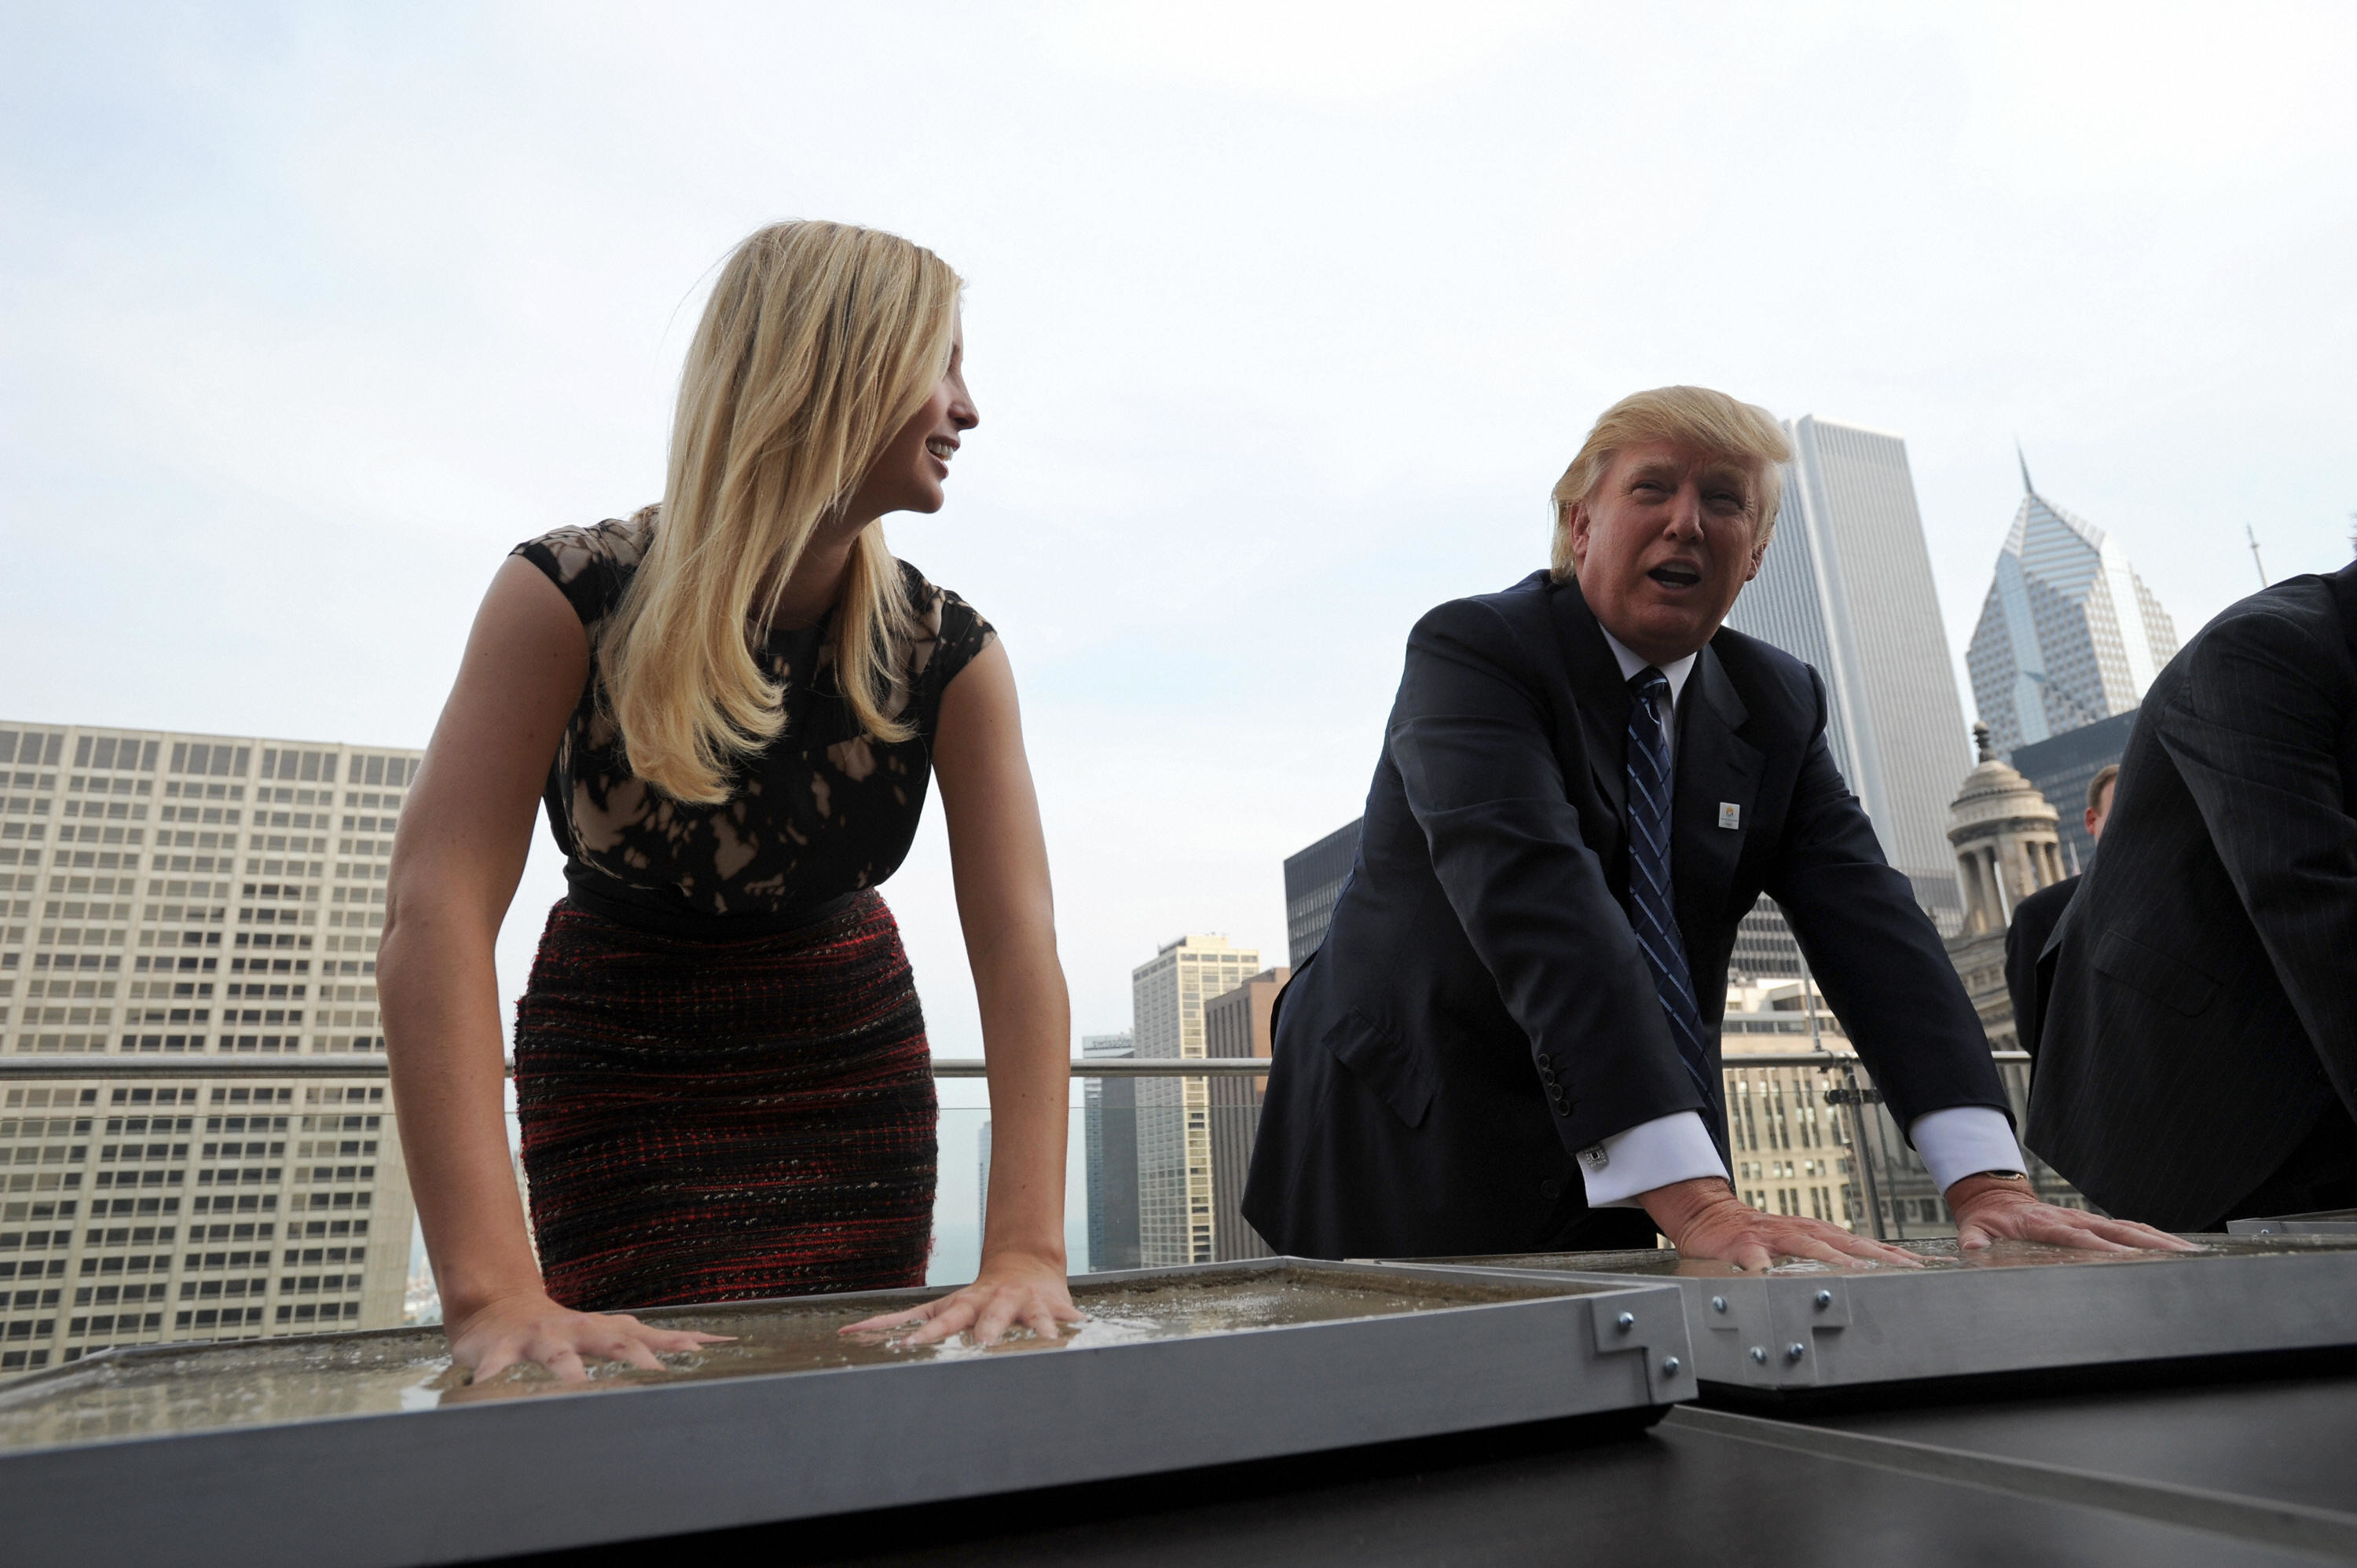 Real estate developer Donald Trump and his daughte Ivanka make hand prints during a press conference at the Trump International Hotel and Tower in Chicago on September 24, 2008. Trump's 1,360-foot (414.5-meter), 92-story tower is expected to be finished in six months and will stand as the second-tallest building in Chicago, after the Sears Tower.     AFP PHOTO/Amanda Rivkin (Photo credit should read Amanda Rivkin/AFP/Getty Images)